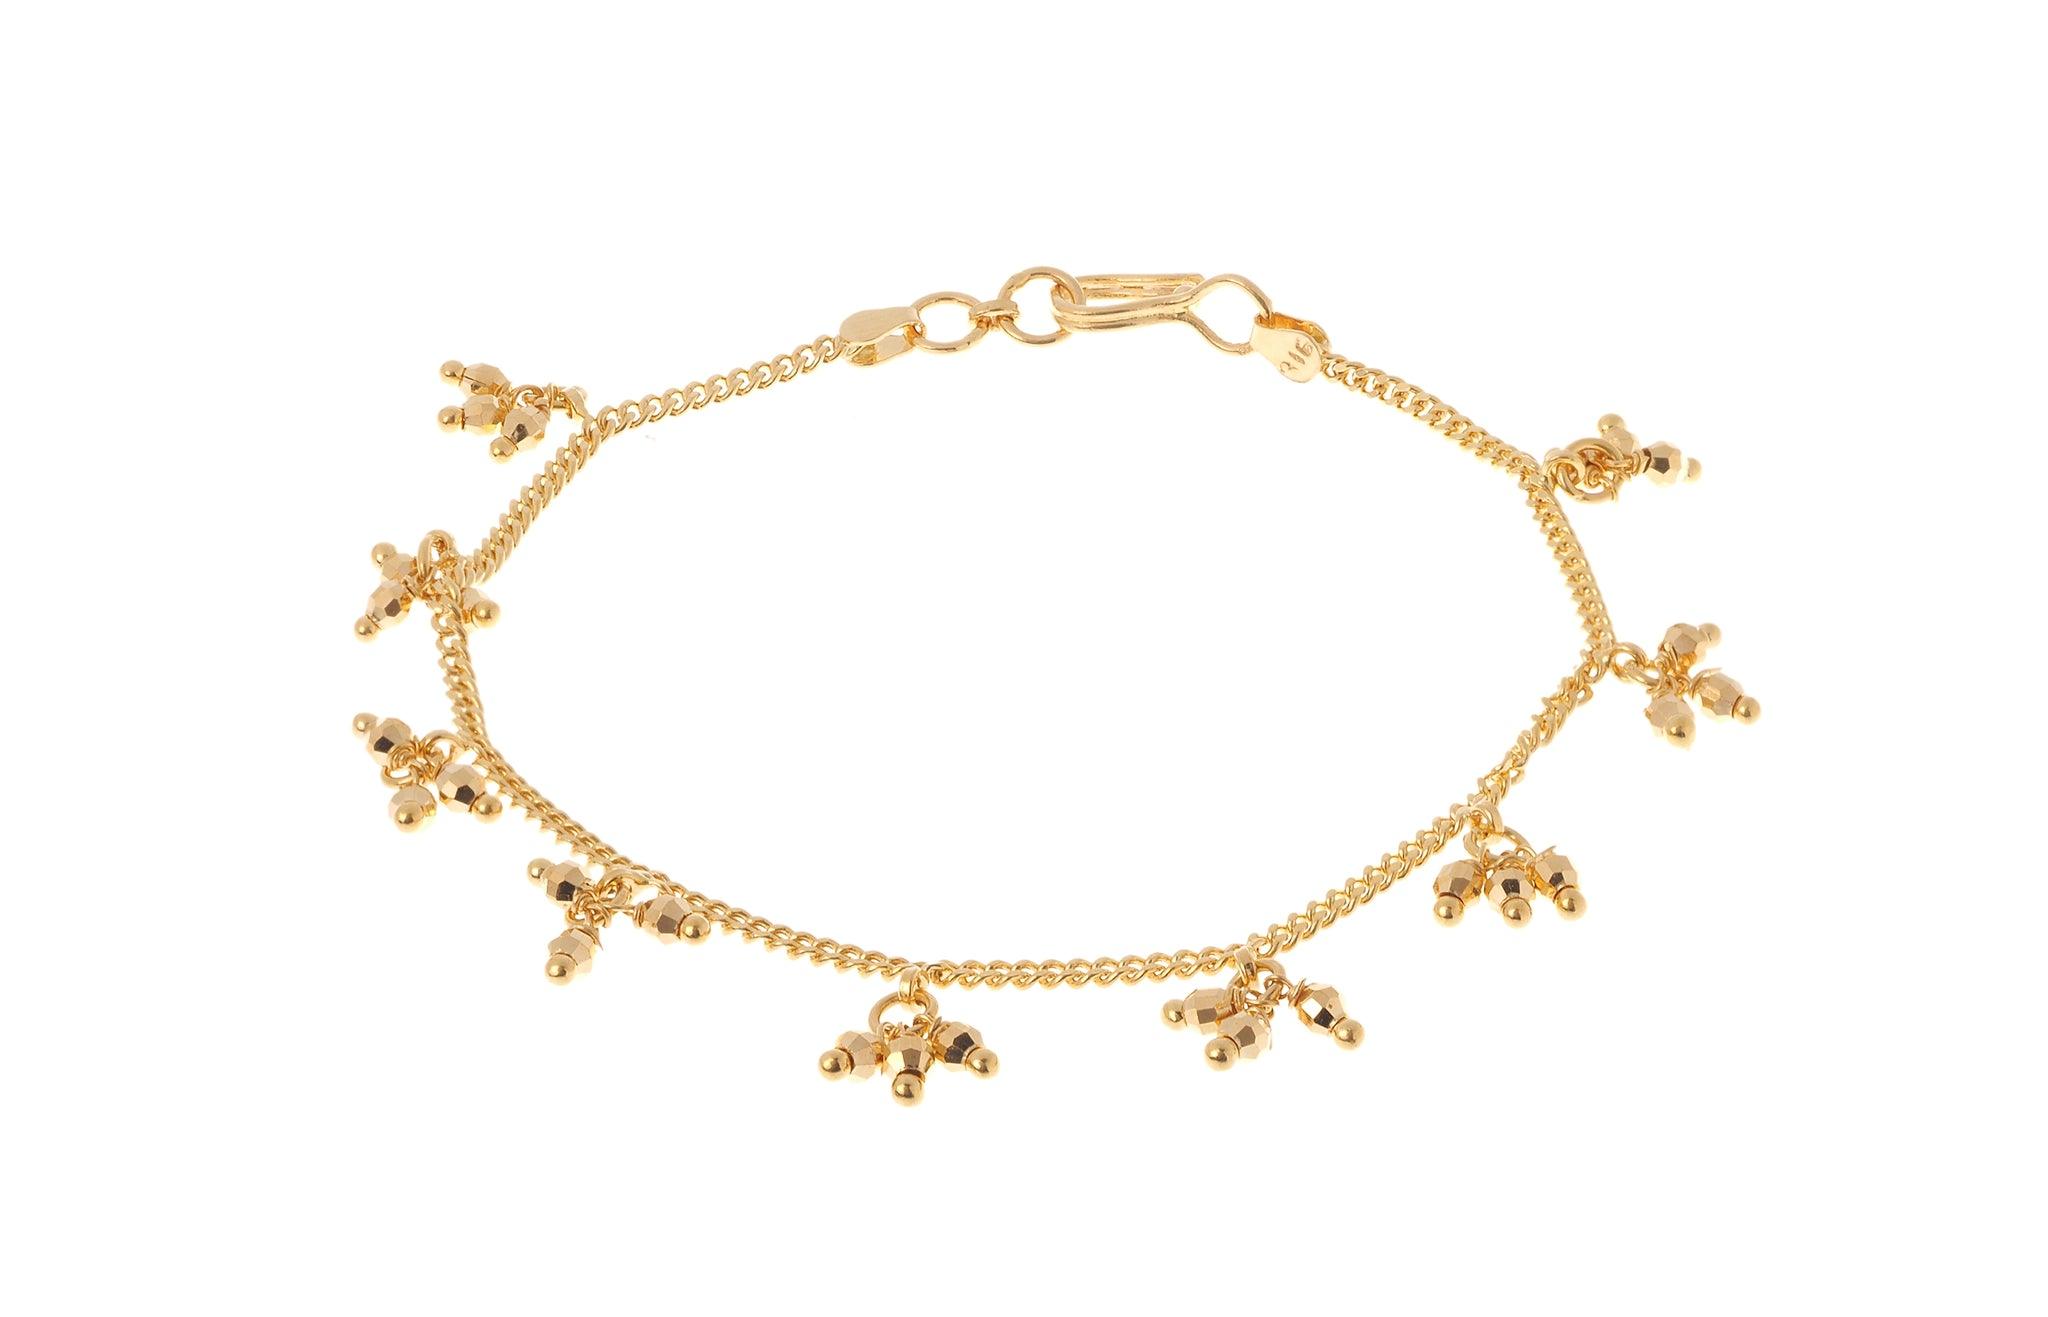 22ct Gold Ladies Bracelet with Bead Drops (6.8g) LBR-7218